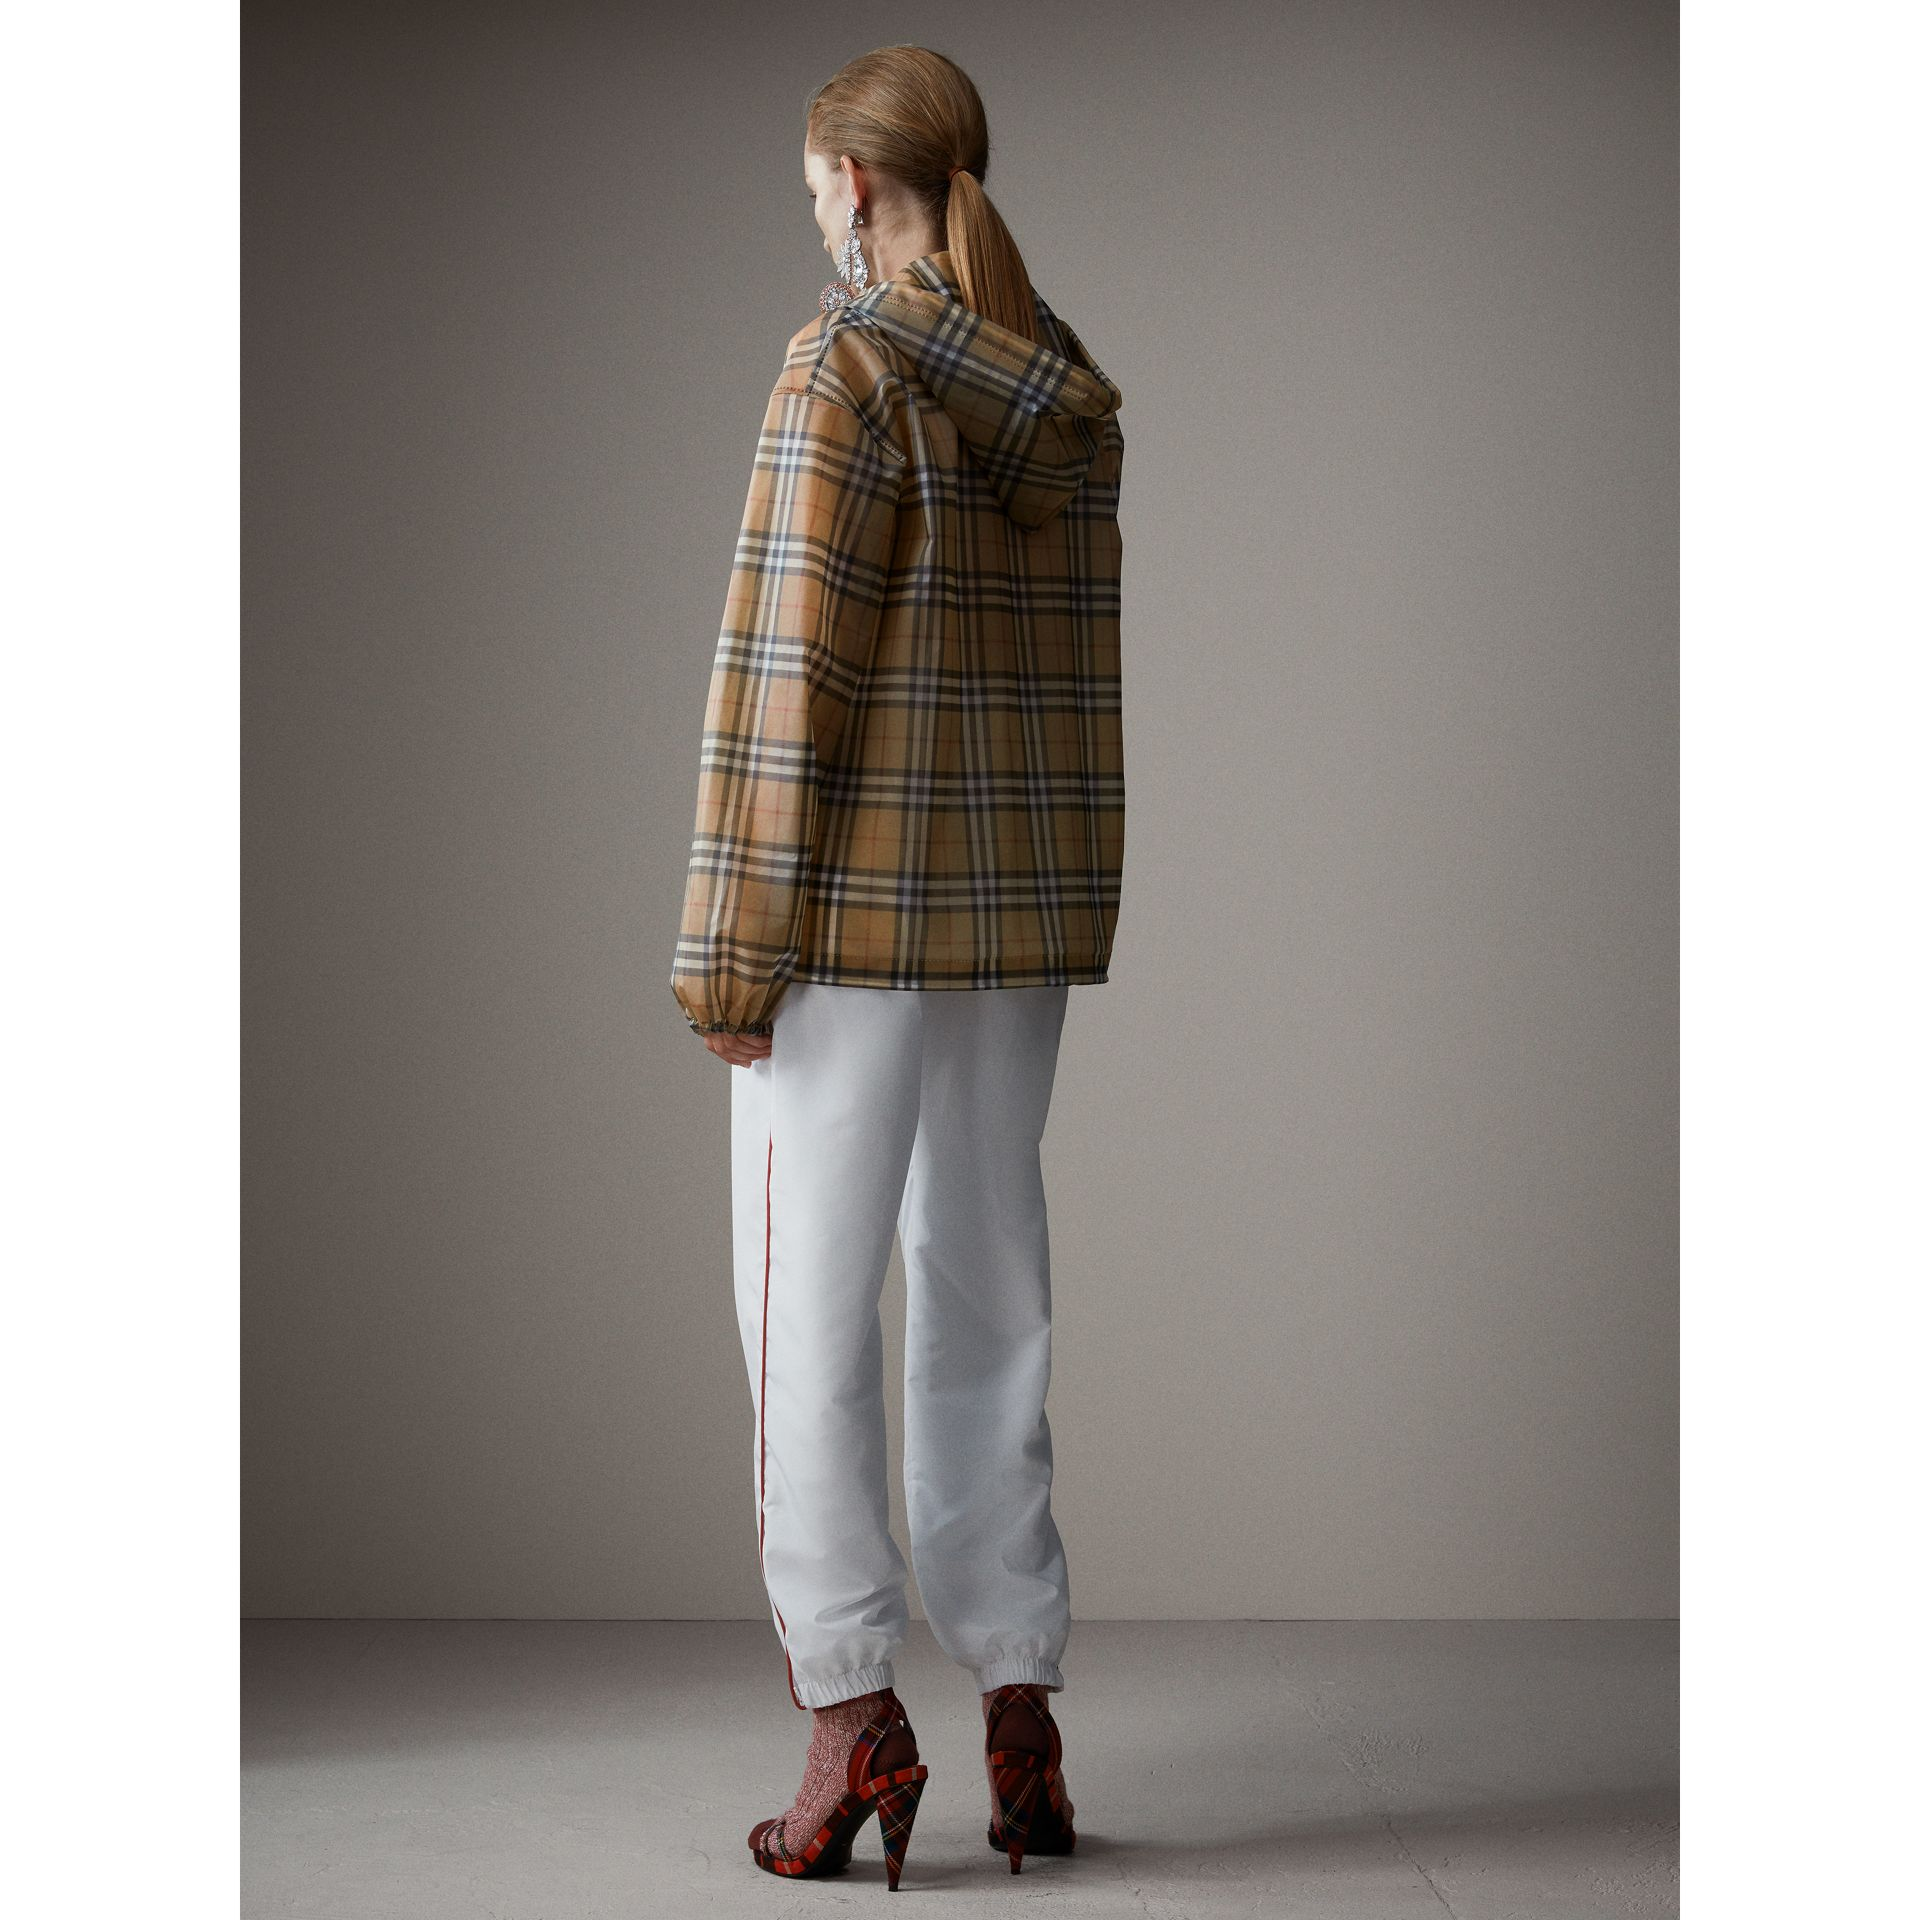 Vintage Check Soft-touch Plastic Cagoule in Antique Yellow - Women | Burberry - gallery image 3